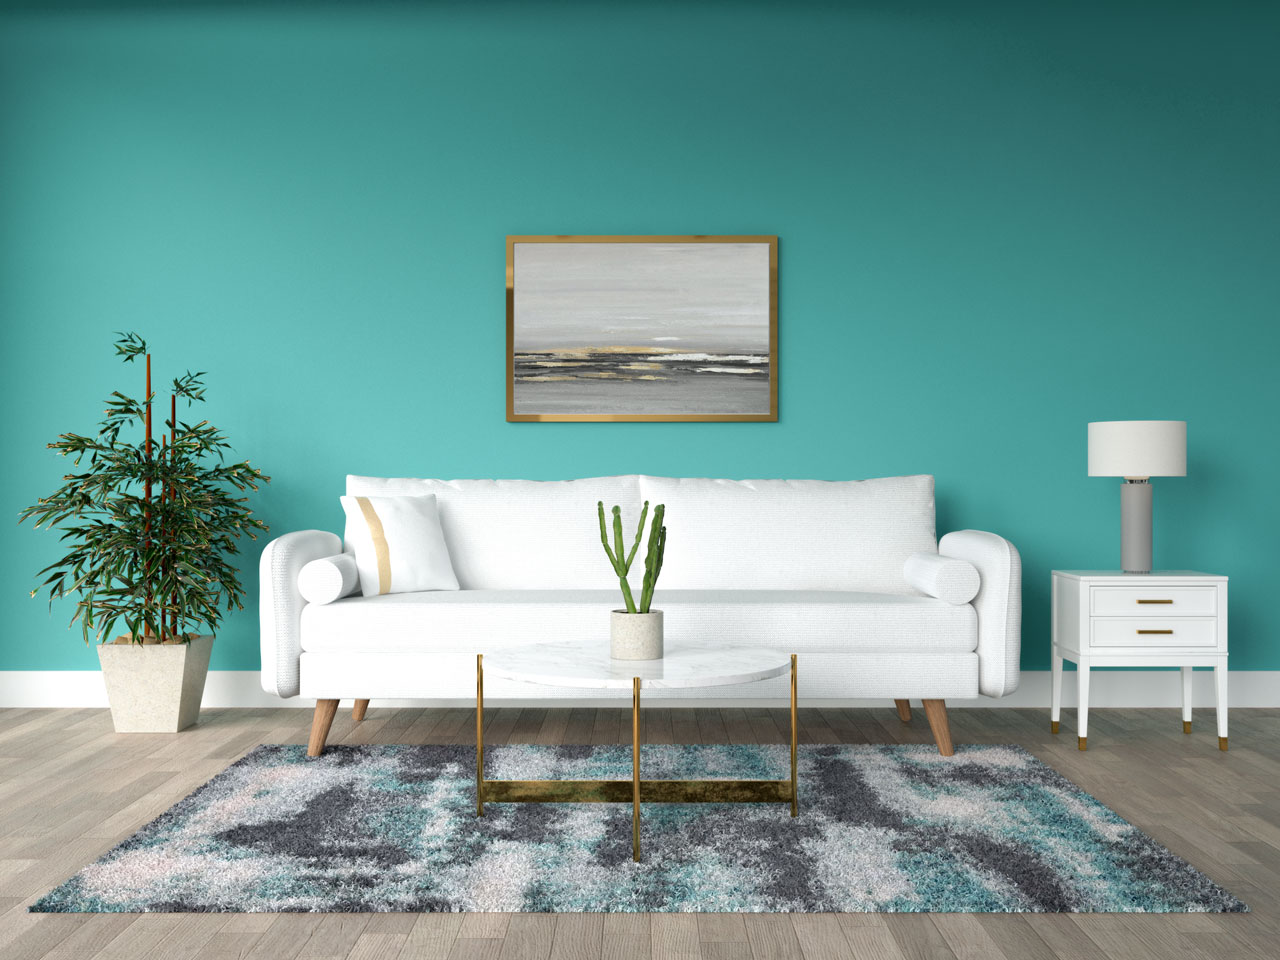 Teal living room with gold accents